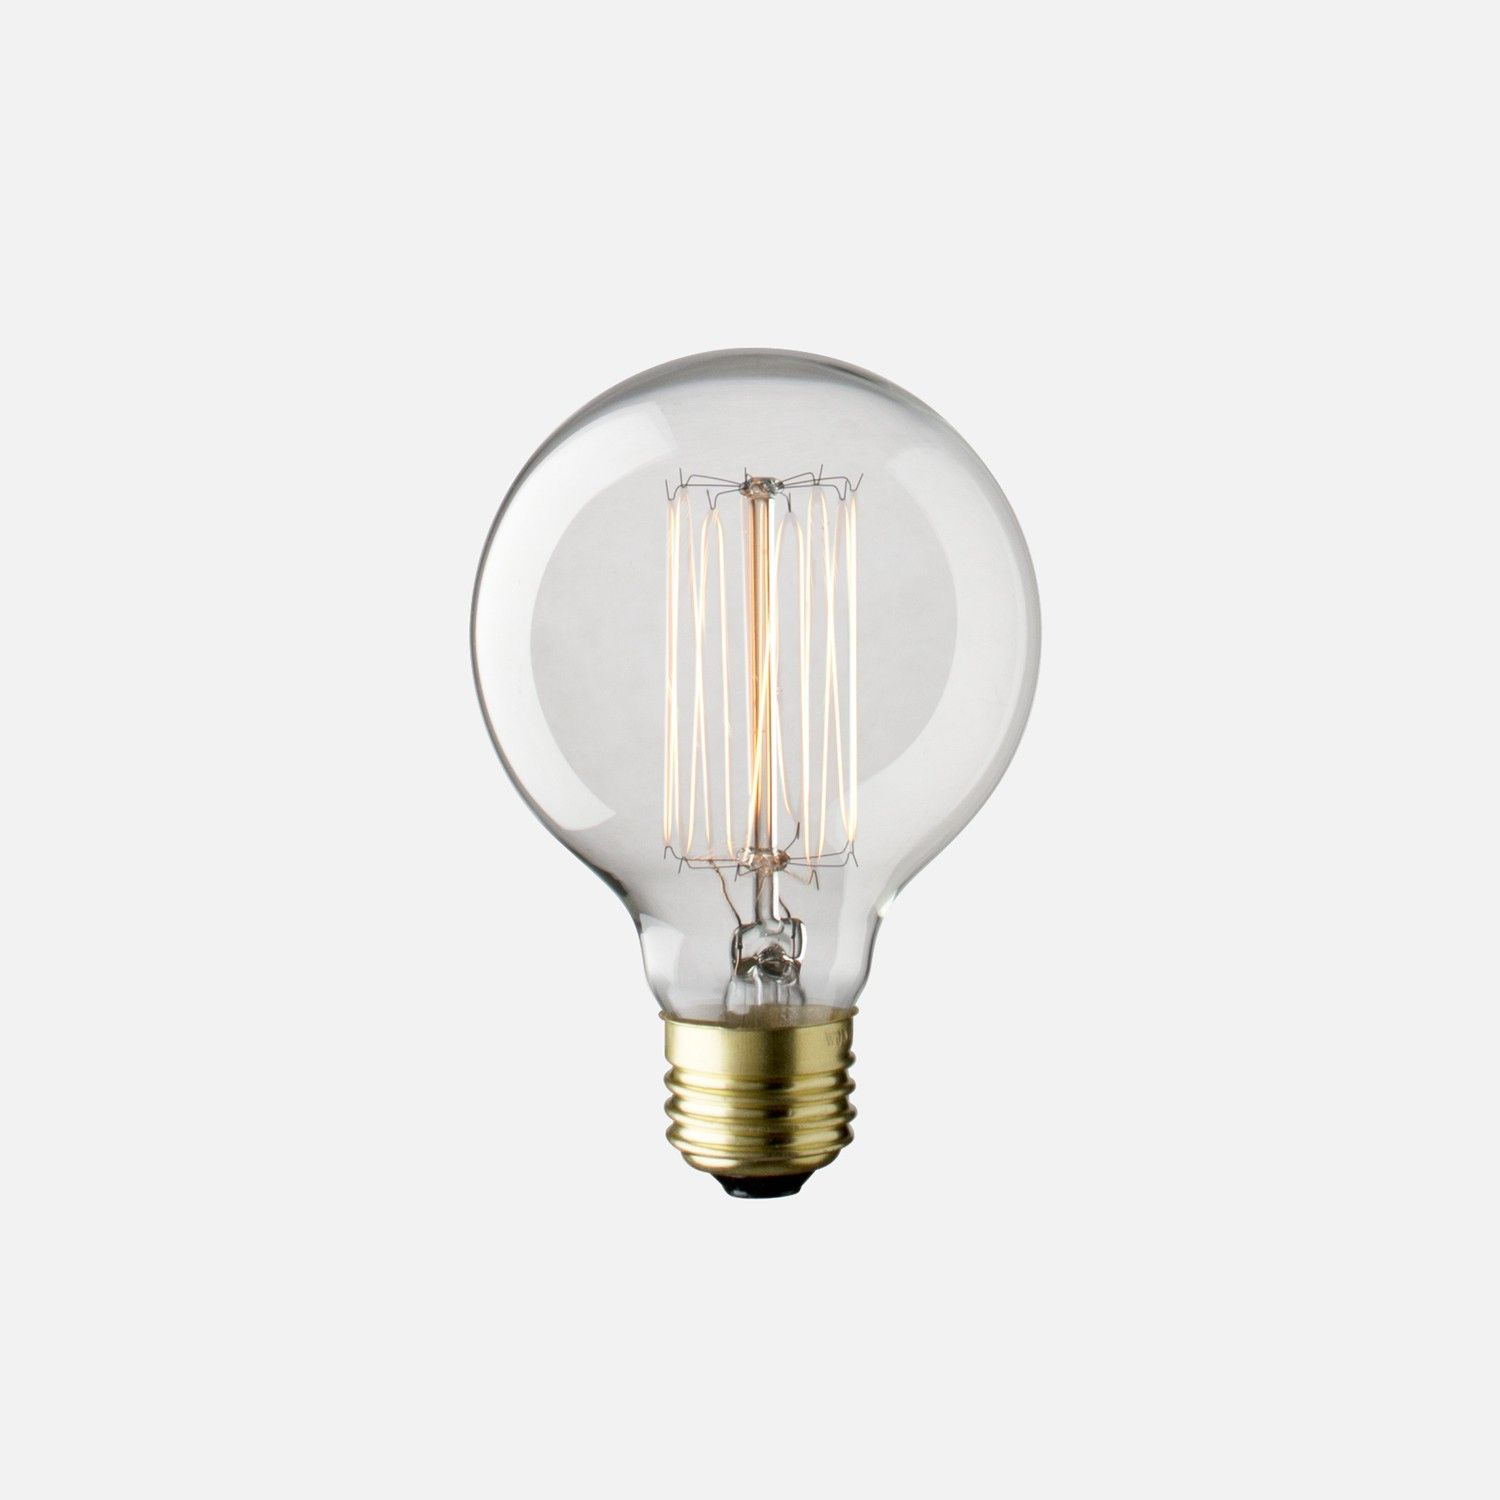 Clear 120v Bulb From Schoolhouse Electric Bulb Filament Bulb Surface Mounted Light Fixture